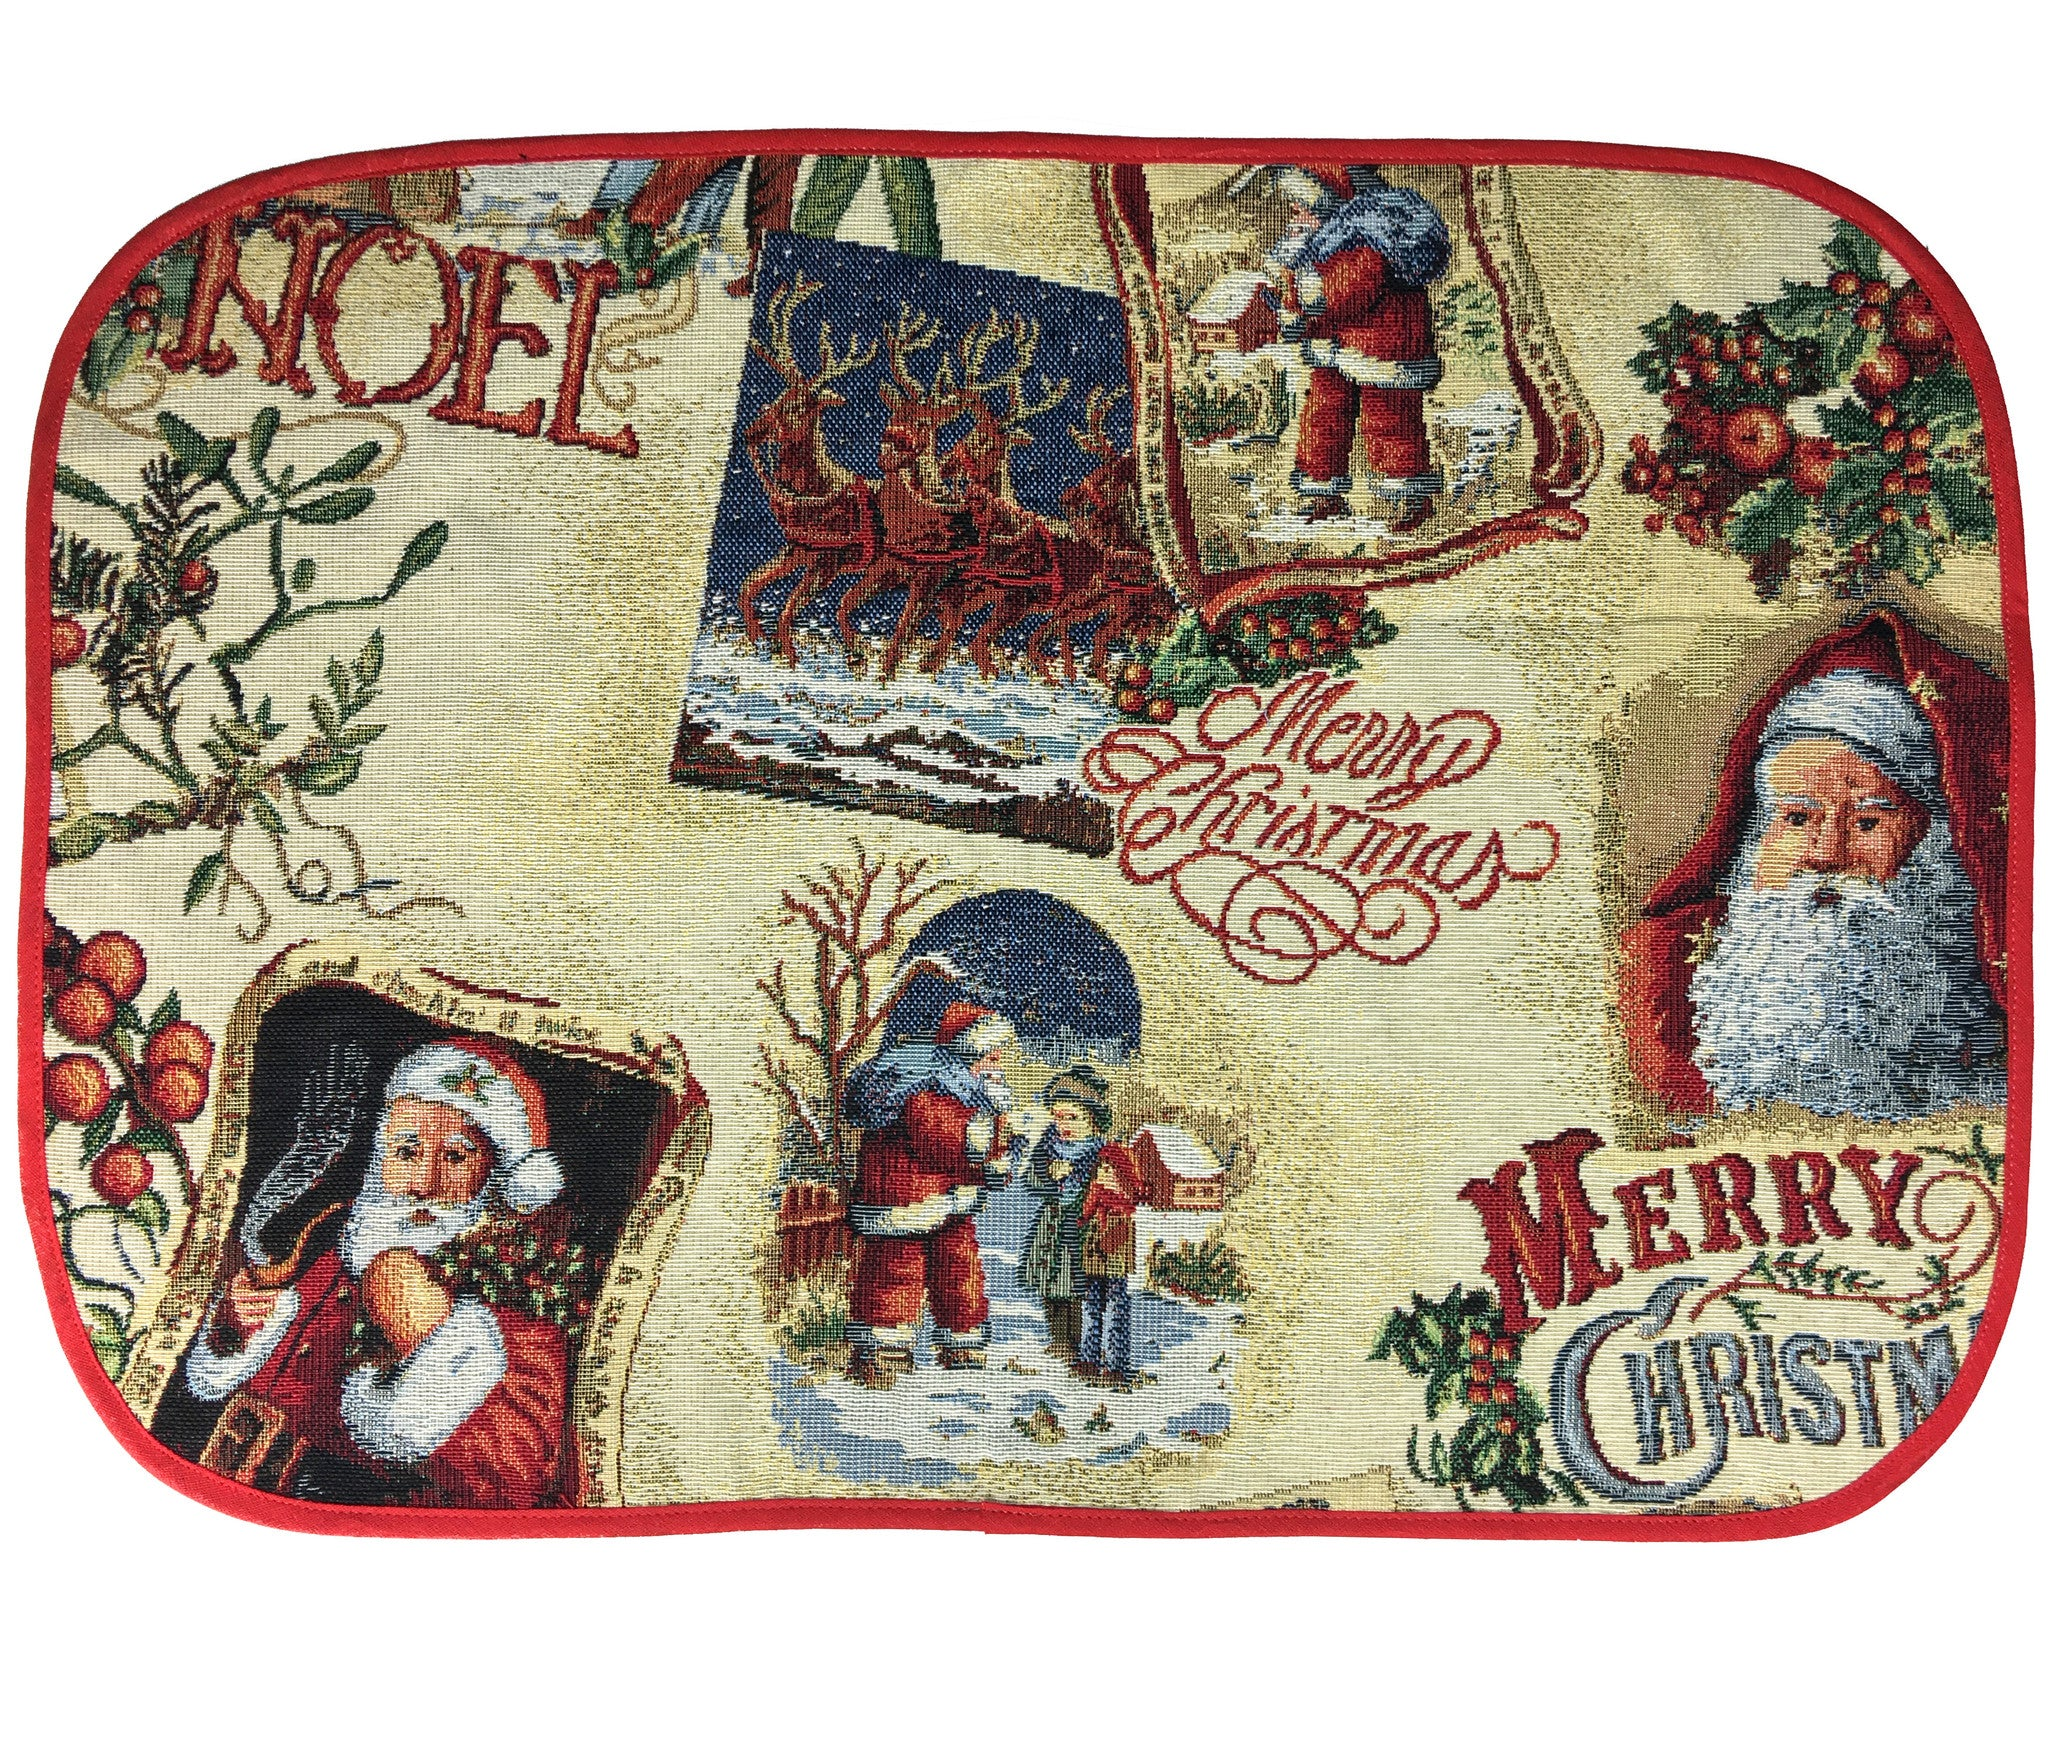 Merry Christmas Tapestry Placemats from Germany - Set of 6